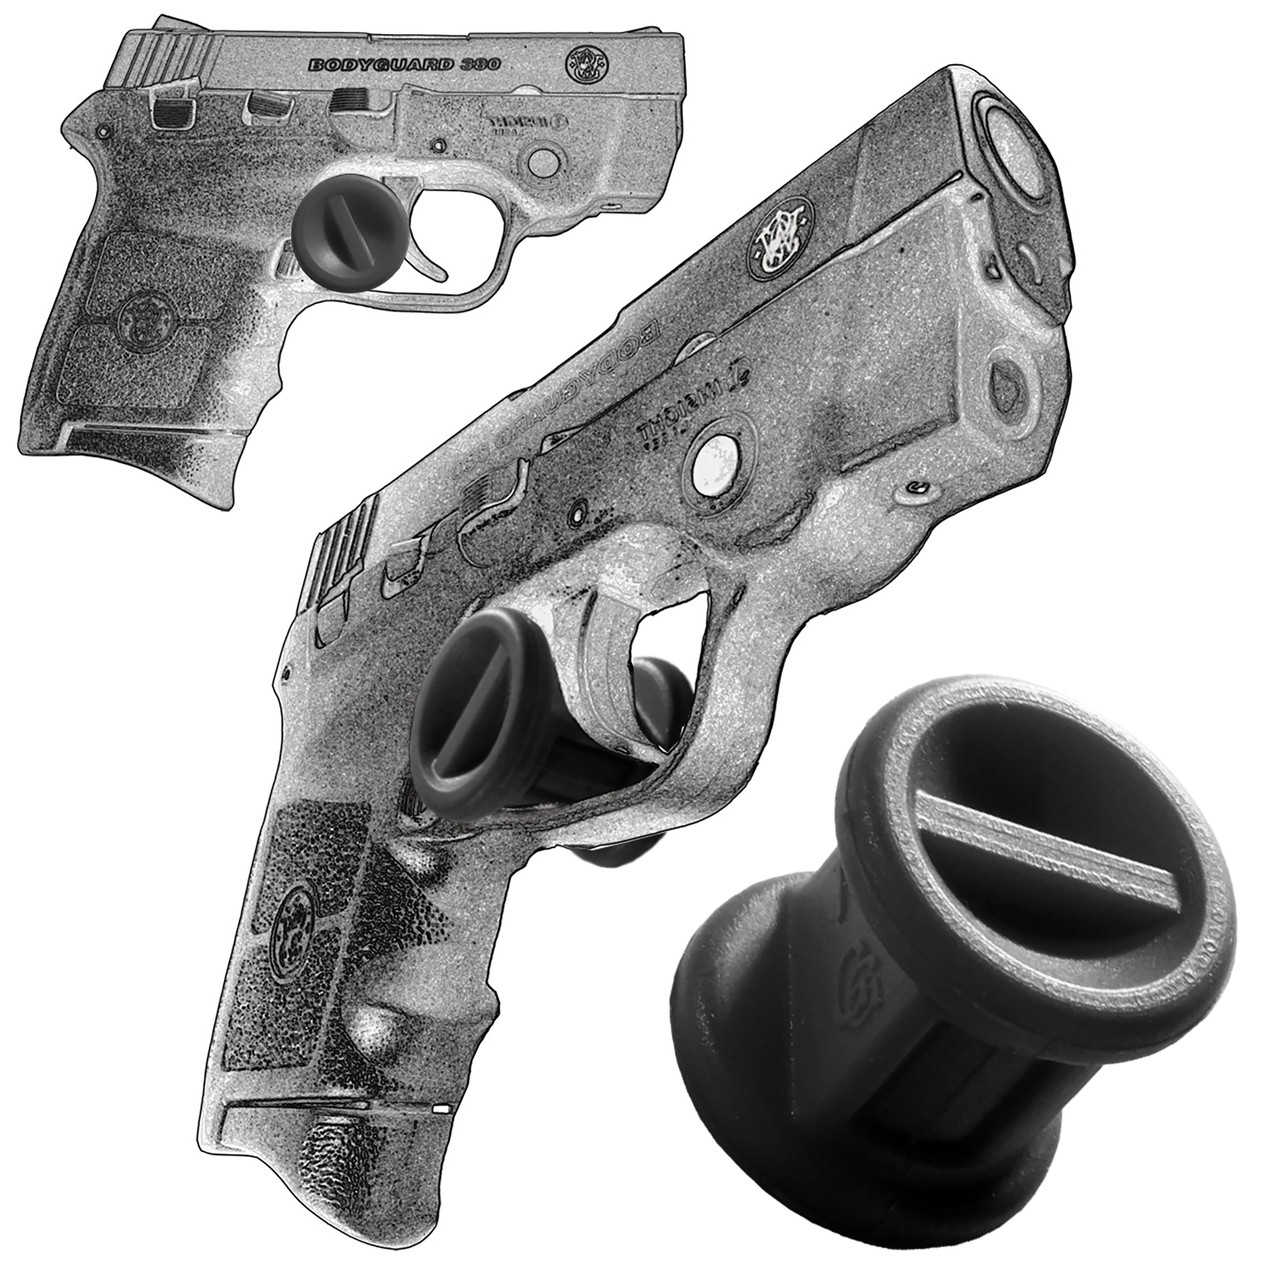 Garrison Grip Micro Trigger Stop Holster Fits Smith & Wesson Bodyguard 380 & M&P 380  (s20)